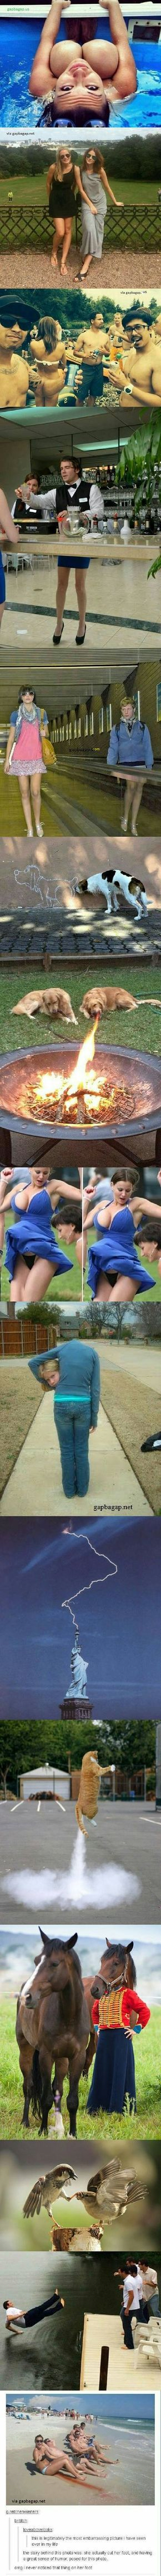 Top 15 Perfectly Timed Funny Pictures And Last One is The Best